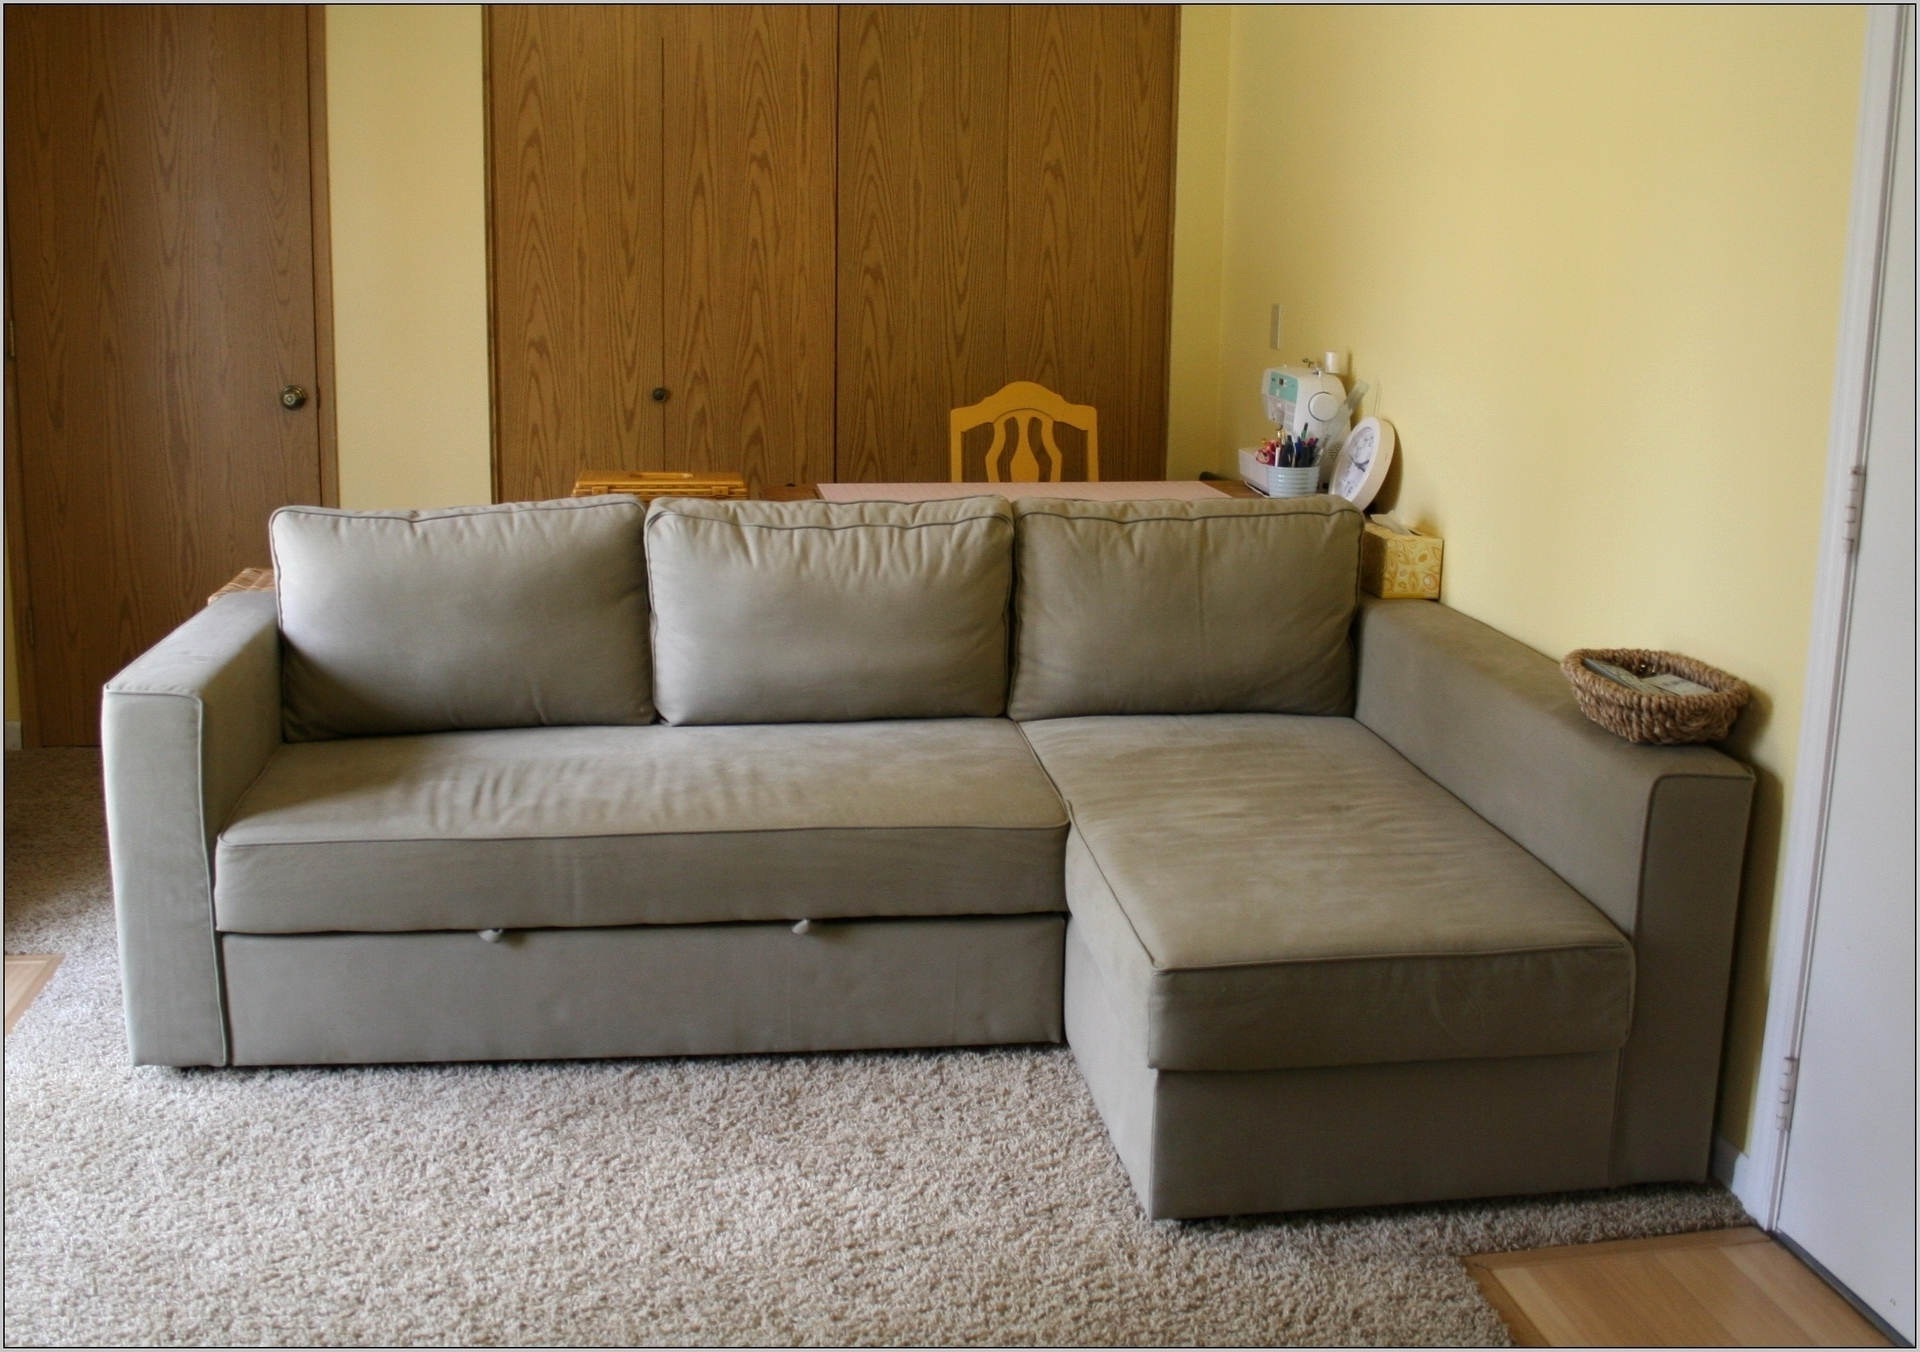 Trendy Ikea Sofa Beds With Chaise Within New Sofa Bed Ikea 2018 – Couches And Sofas Ideas (View 14 of 15)